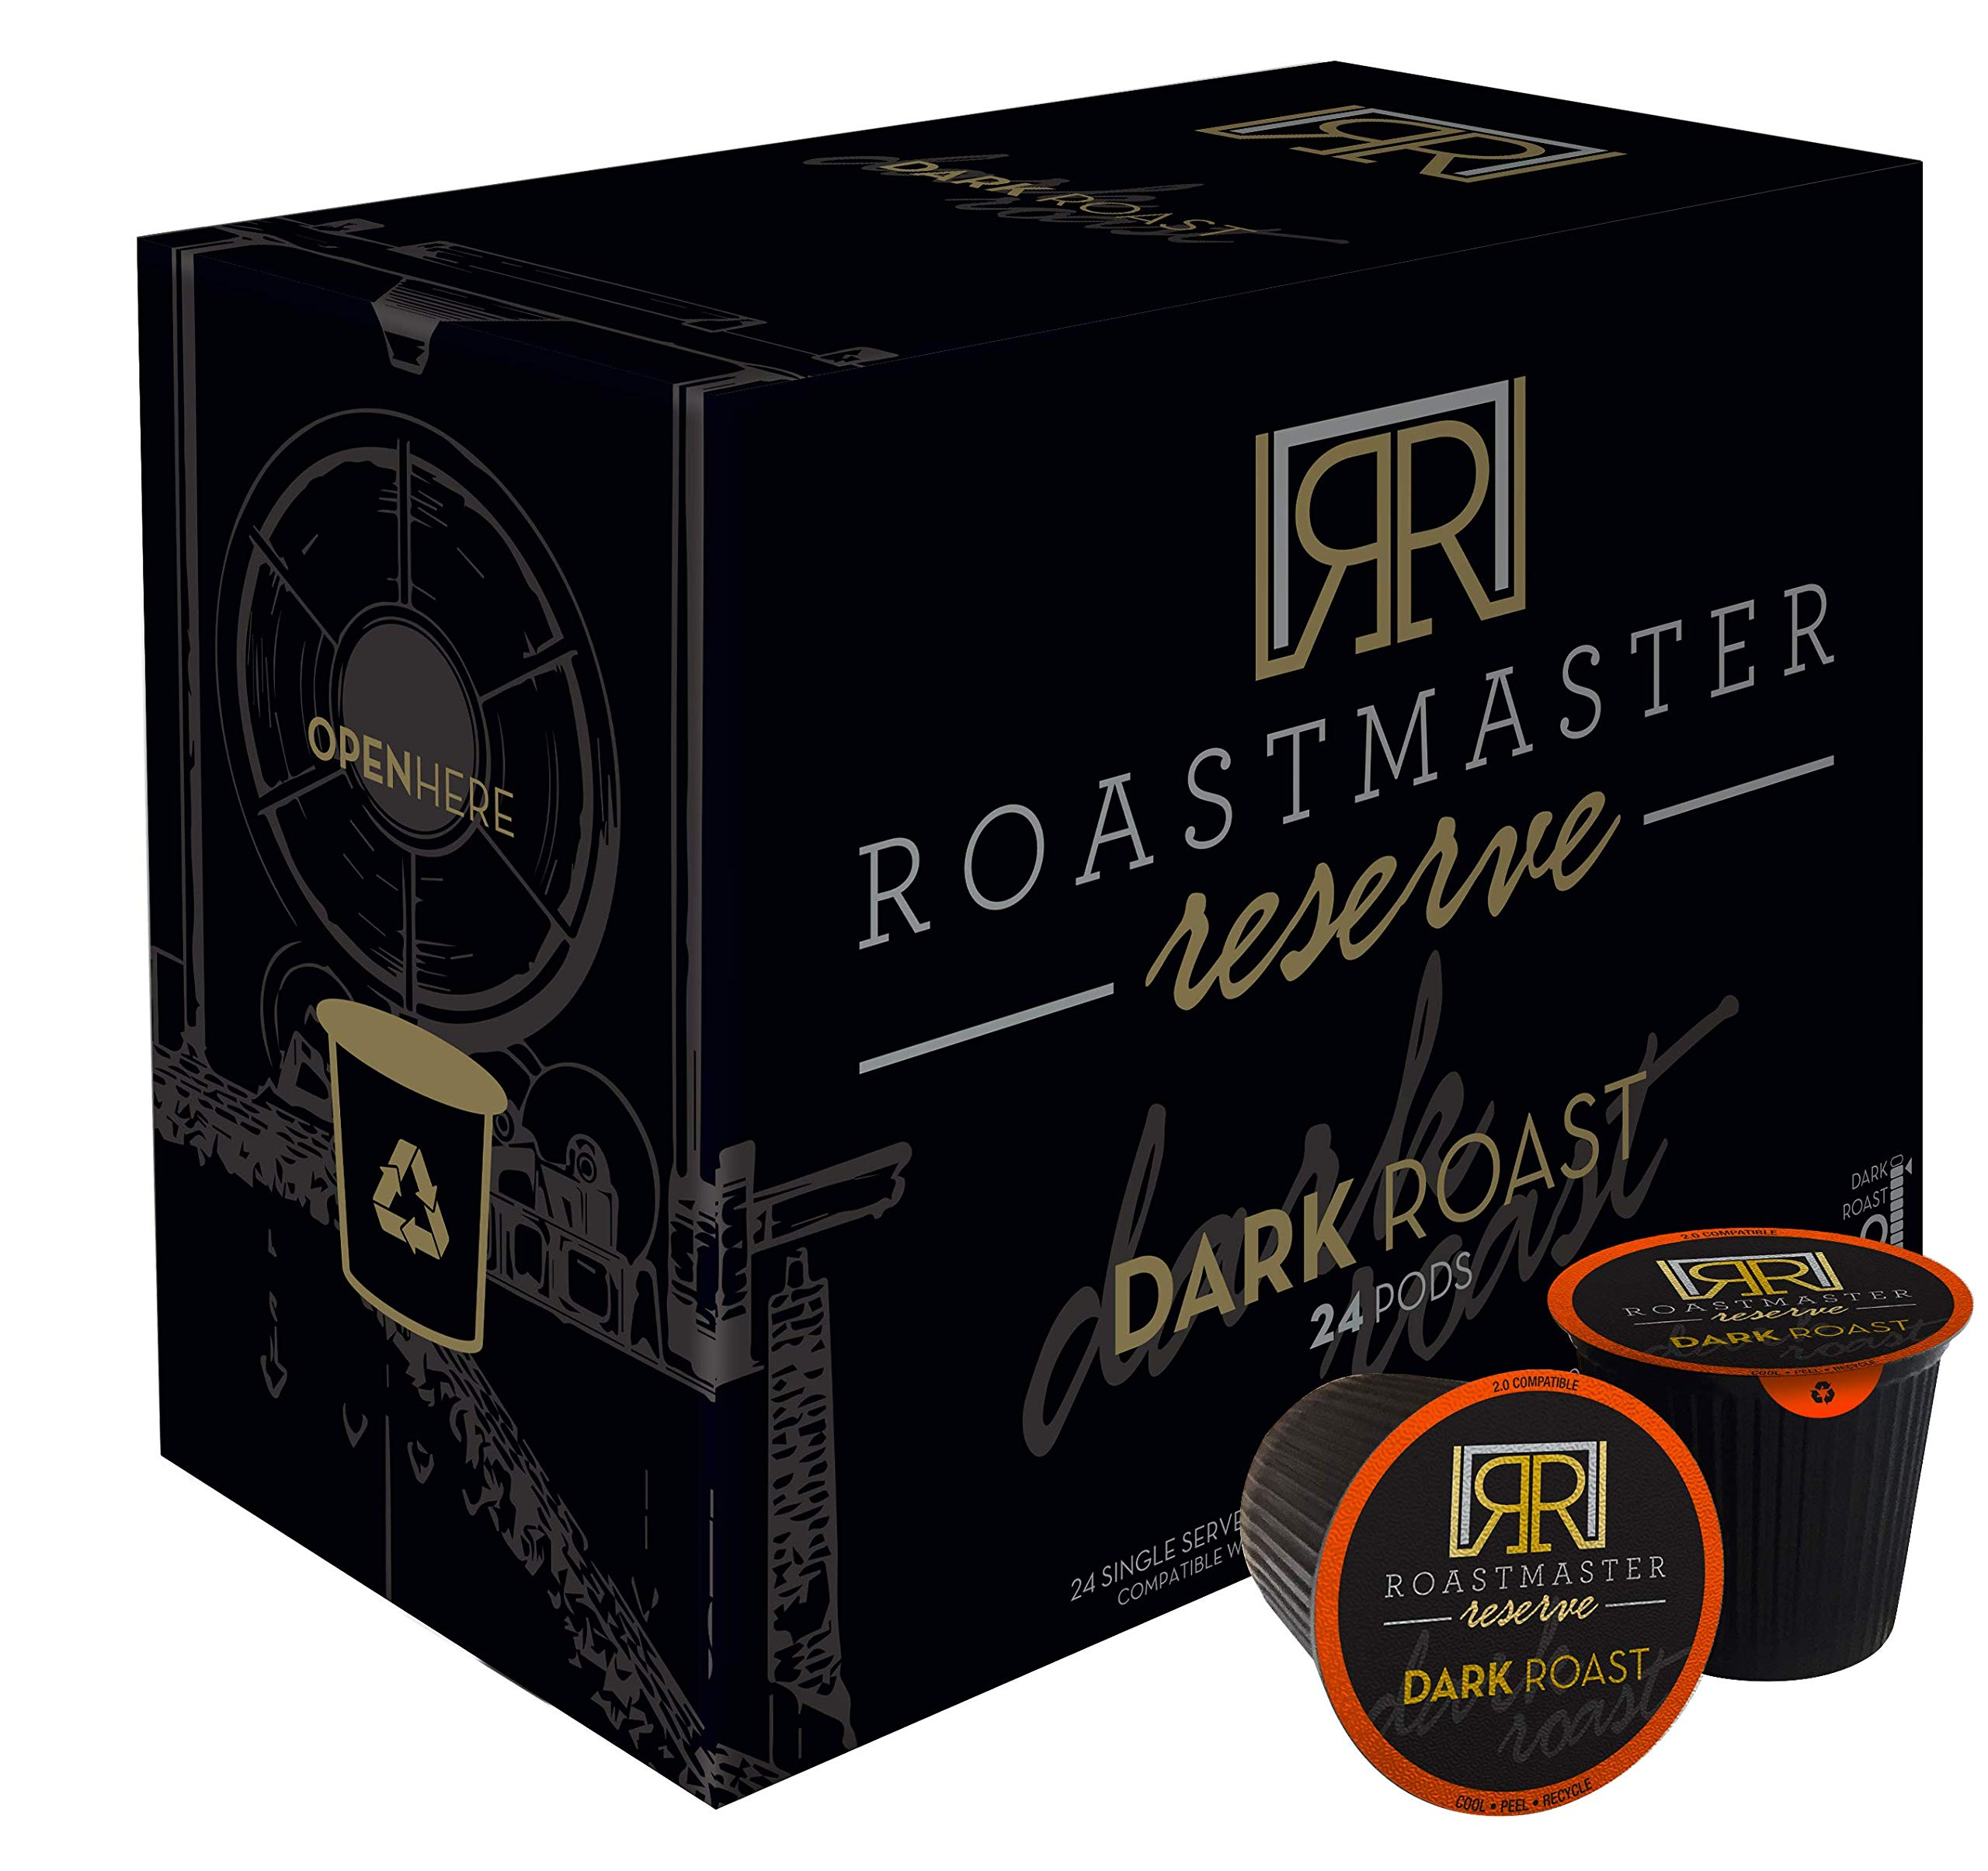 Roastmaster Reserve Dark Roast Coffee Pods - 24ct. Limited-Batch Rare Coffee ''Costa Rican El Tigre Blend'' Recyclable Single Serve Pods, k-cup compatible including 2.0